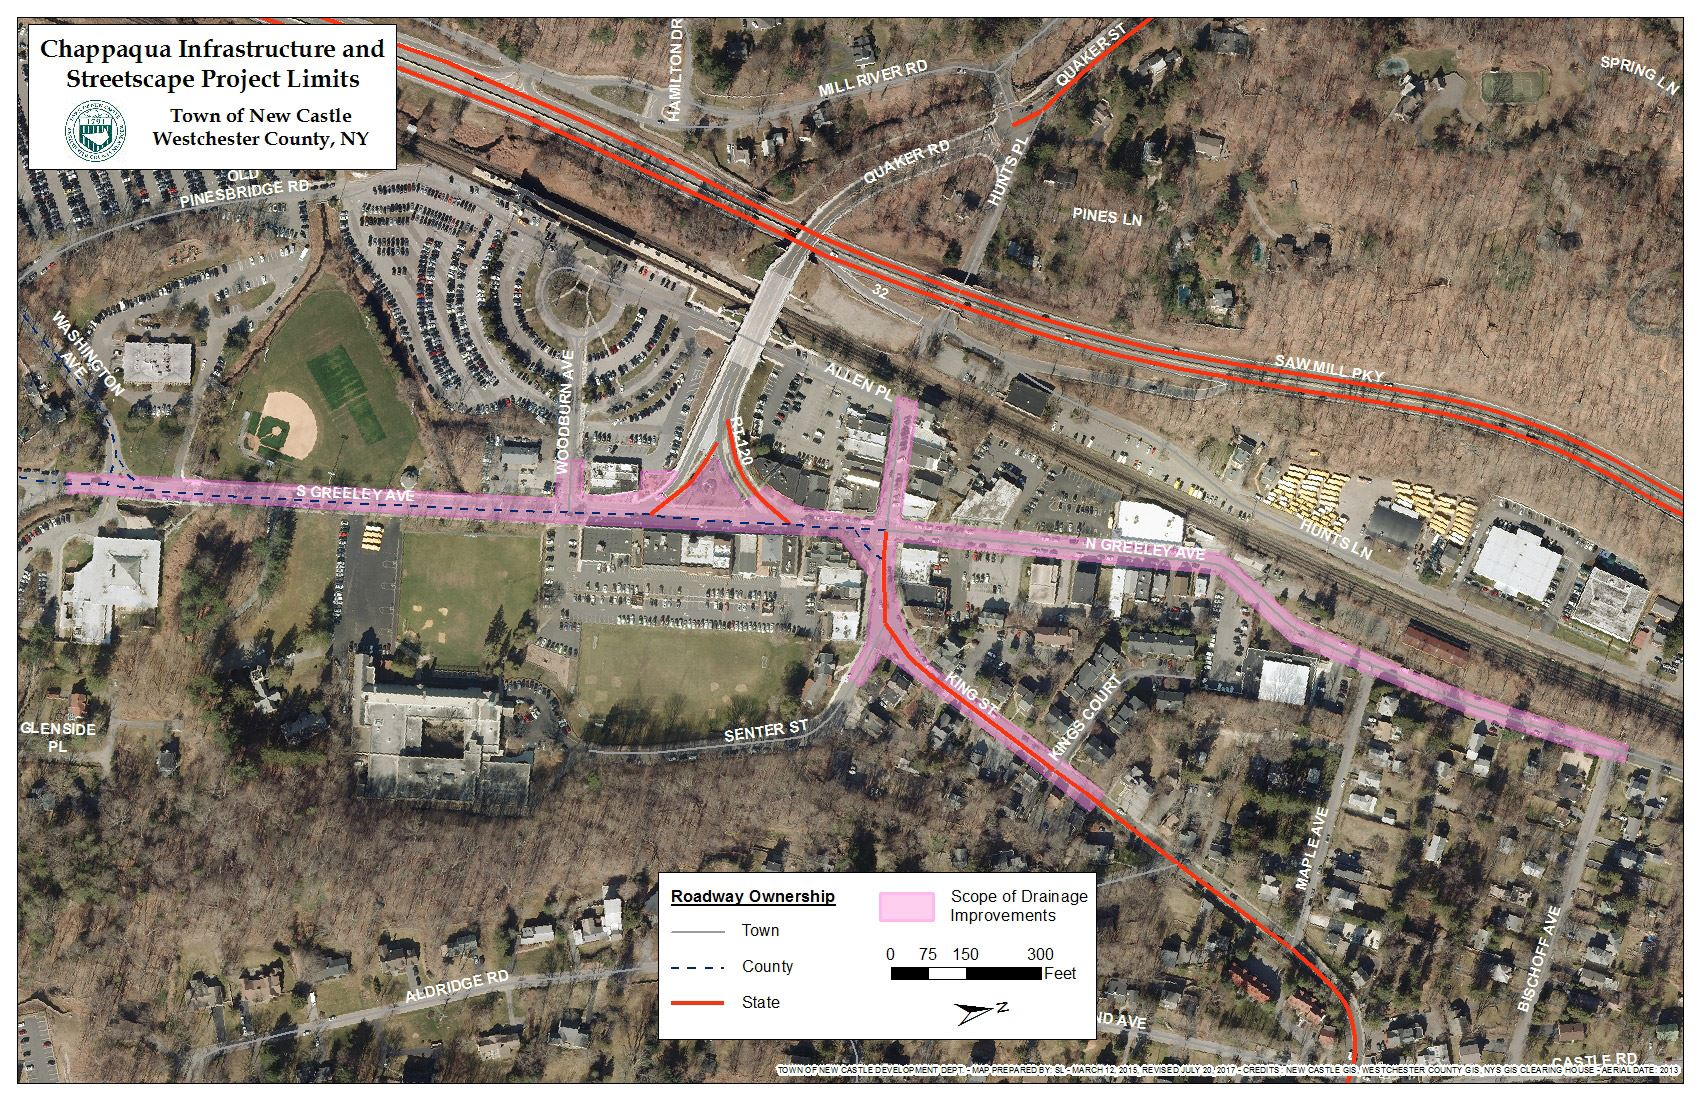 Chappaqua Infrastructure and Streetscape Project Limits (JPG)